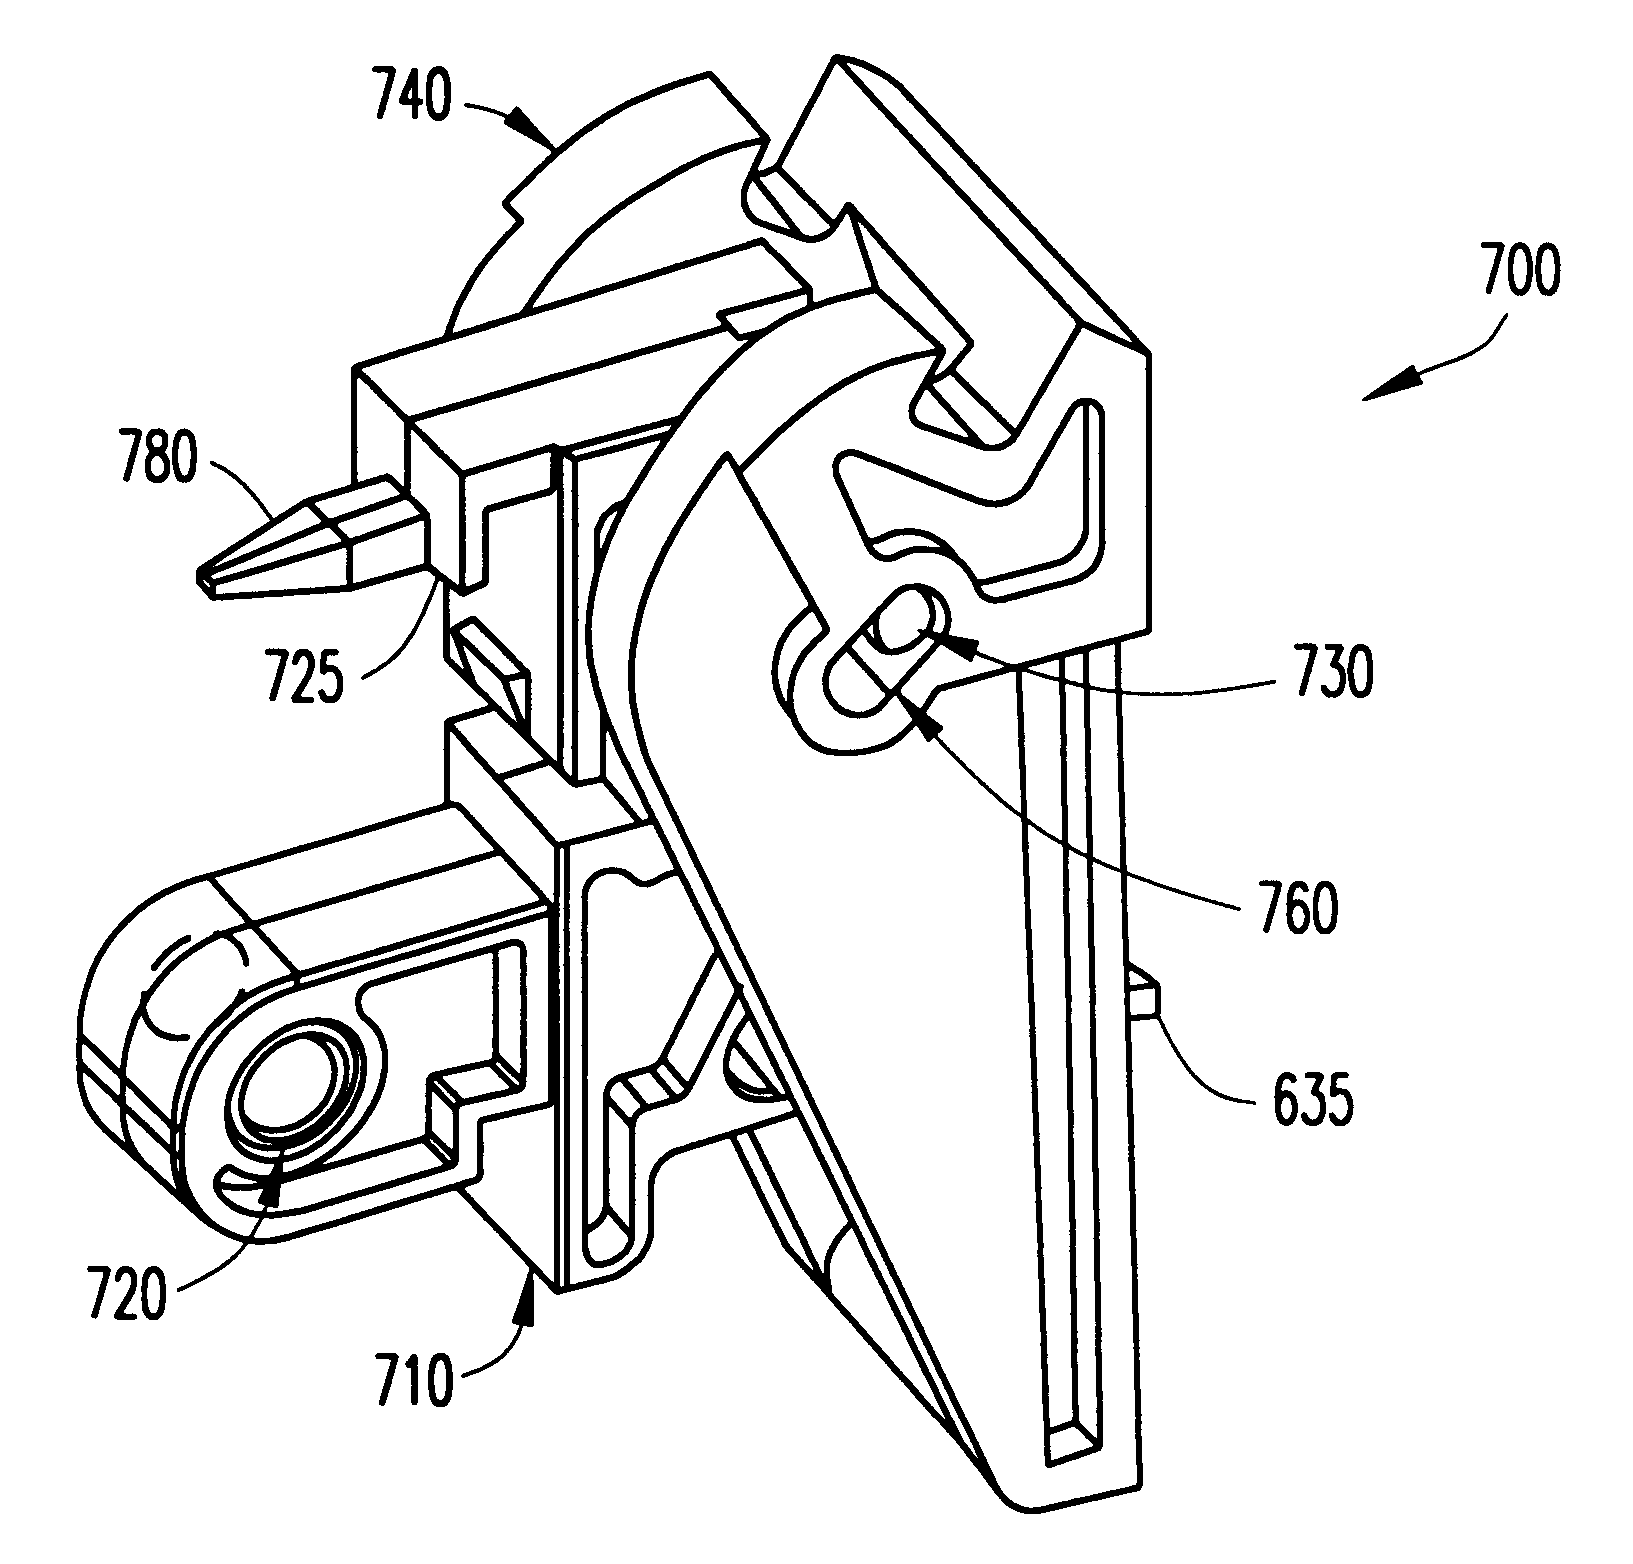 patent us6361335  ejector with